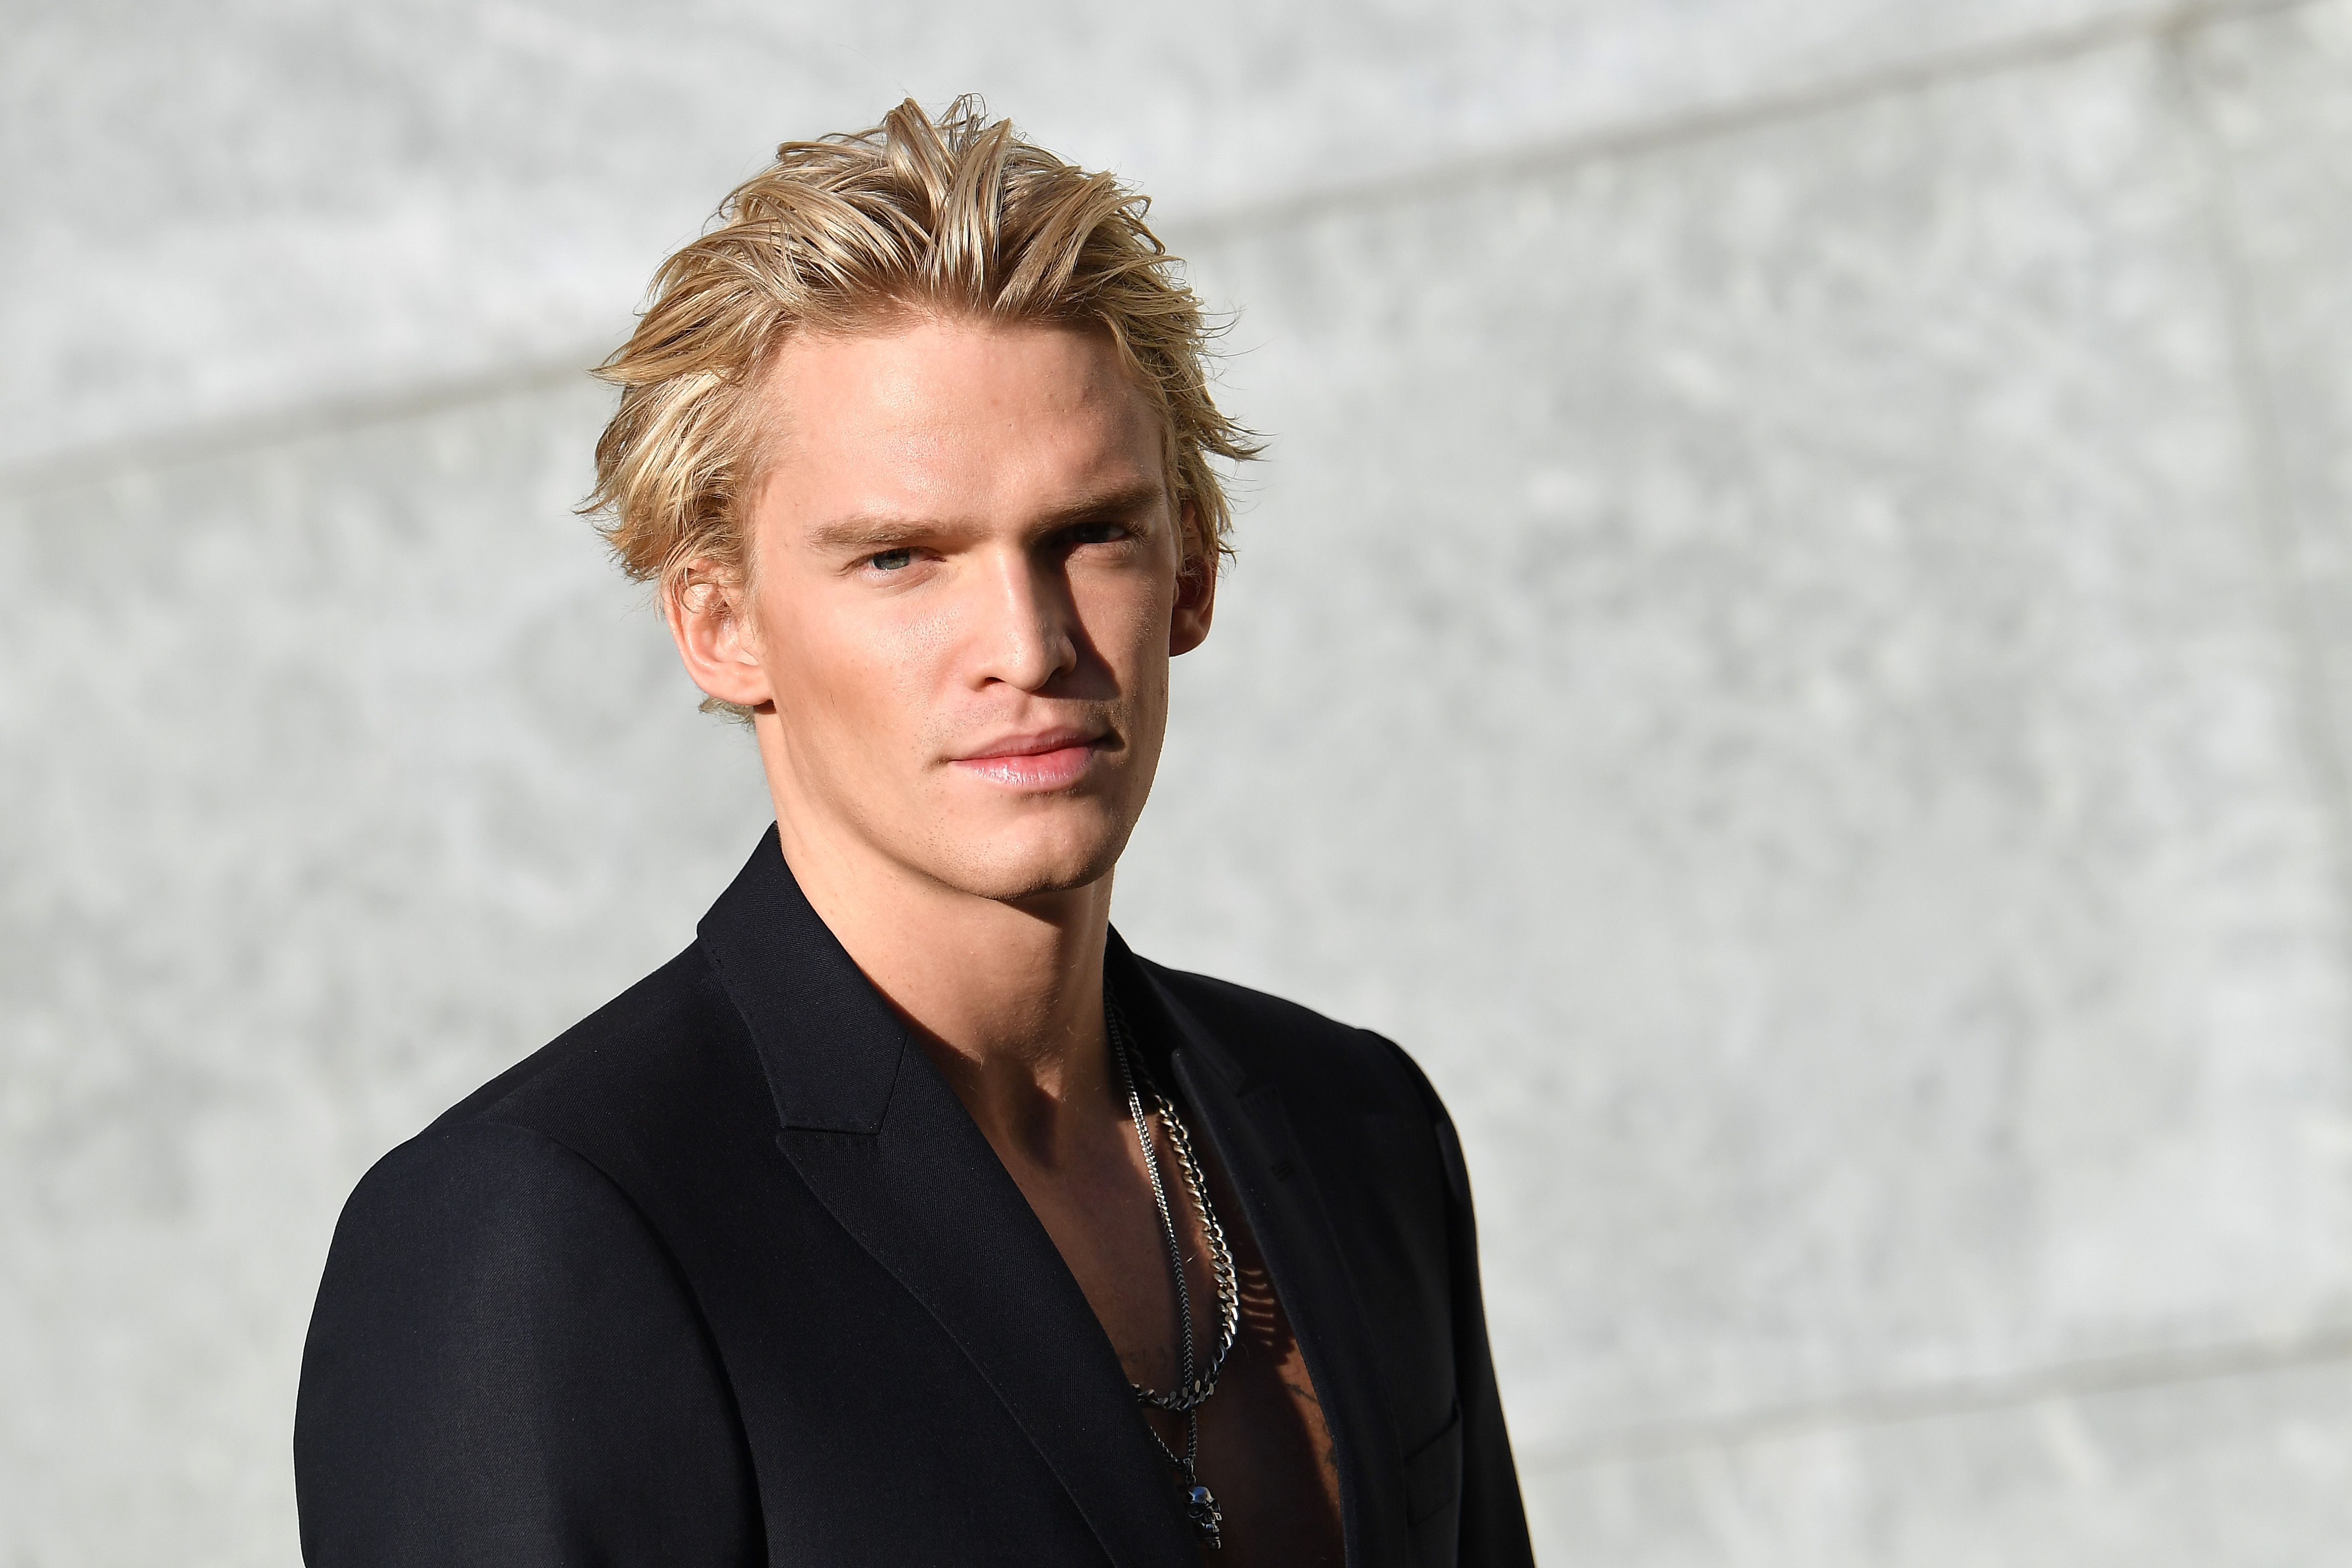 Cody Simpson smiling with a white backdrop.